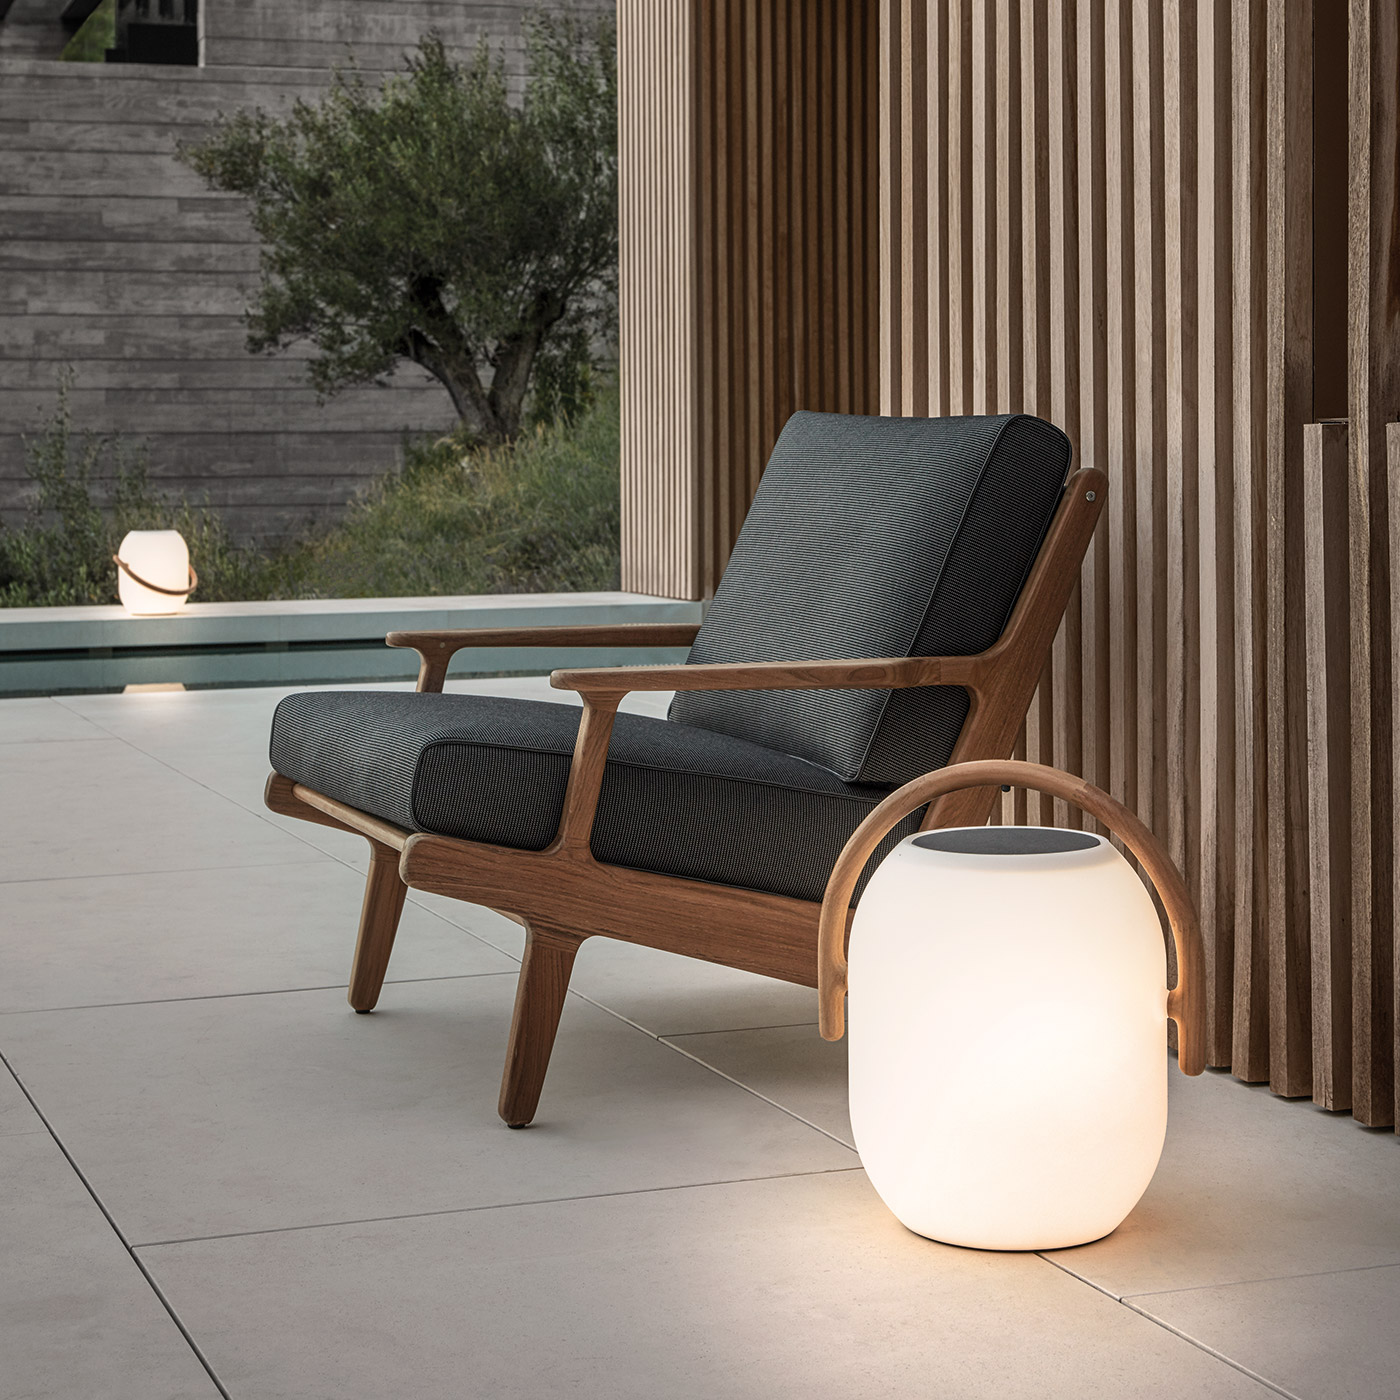 Bay lounge chair by Gloster